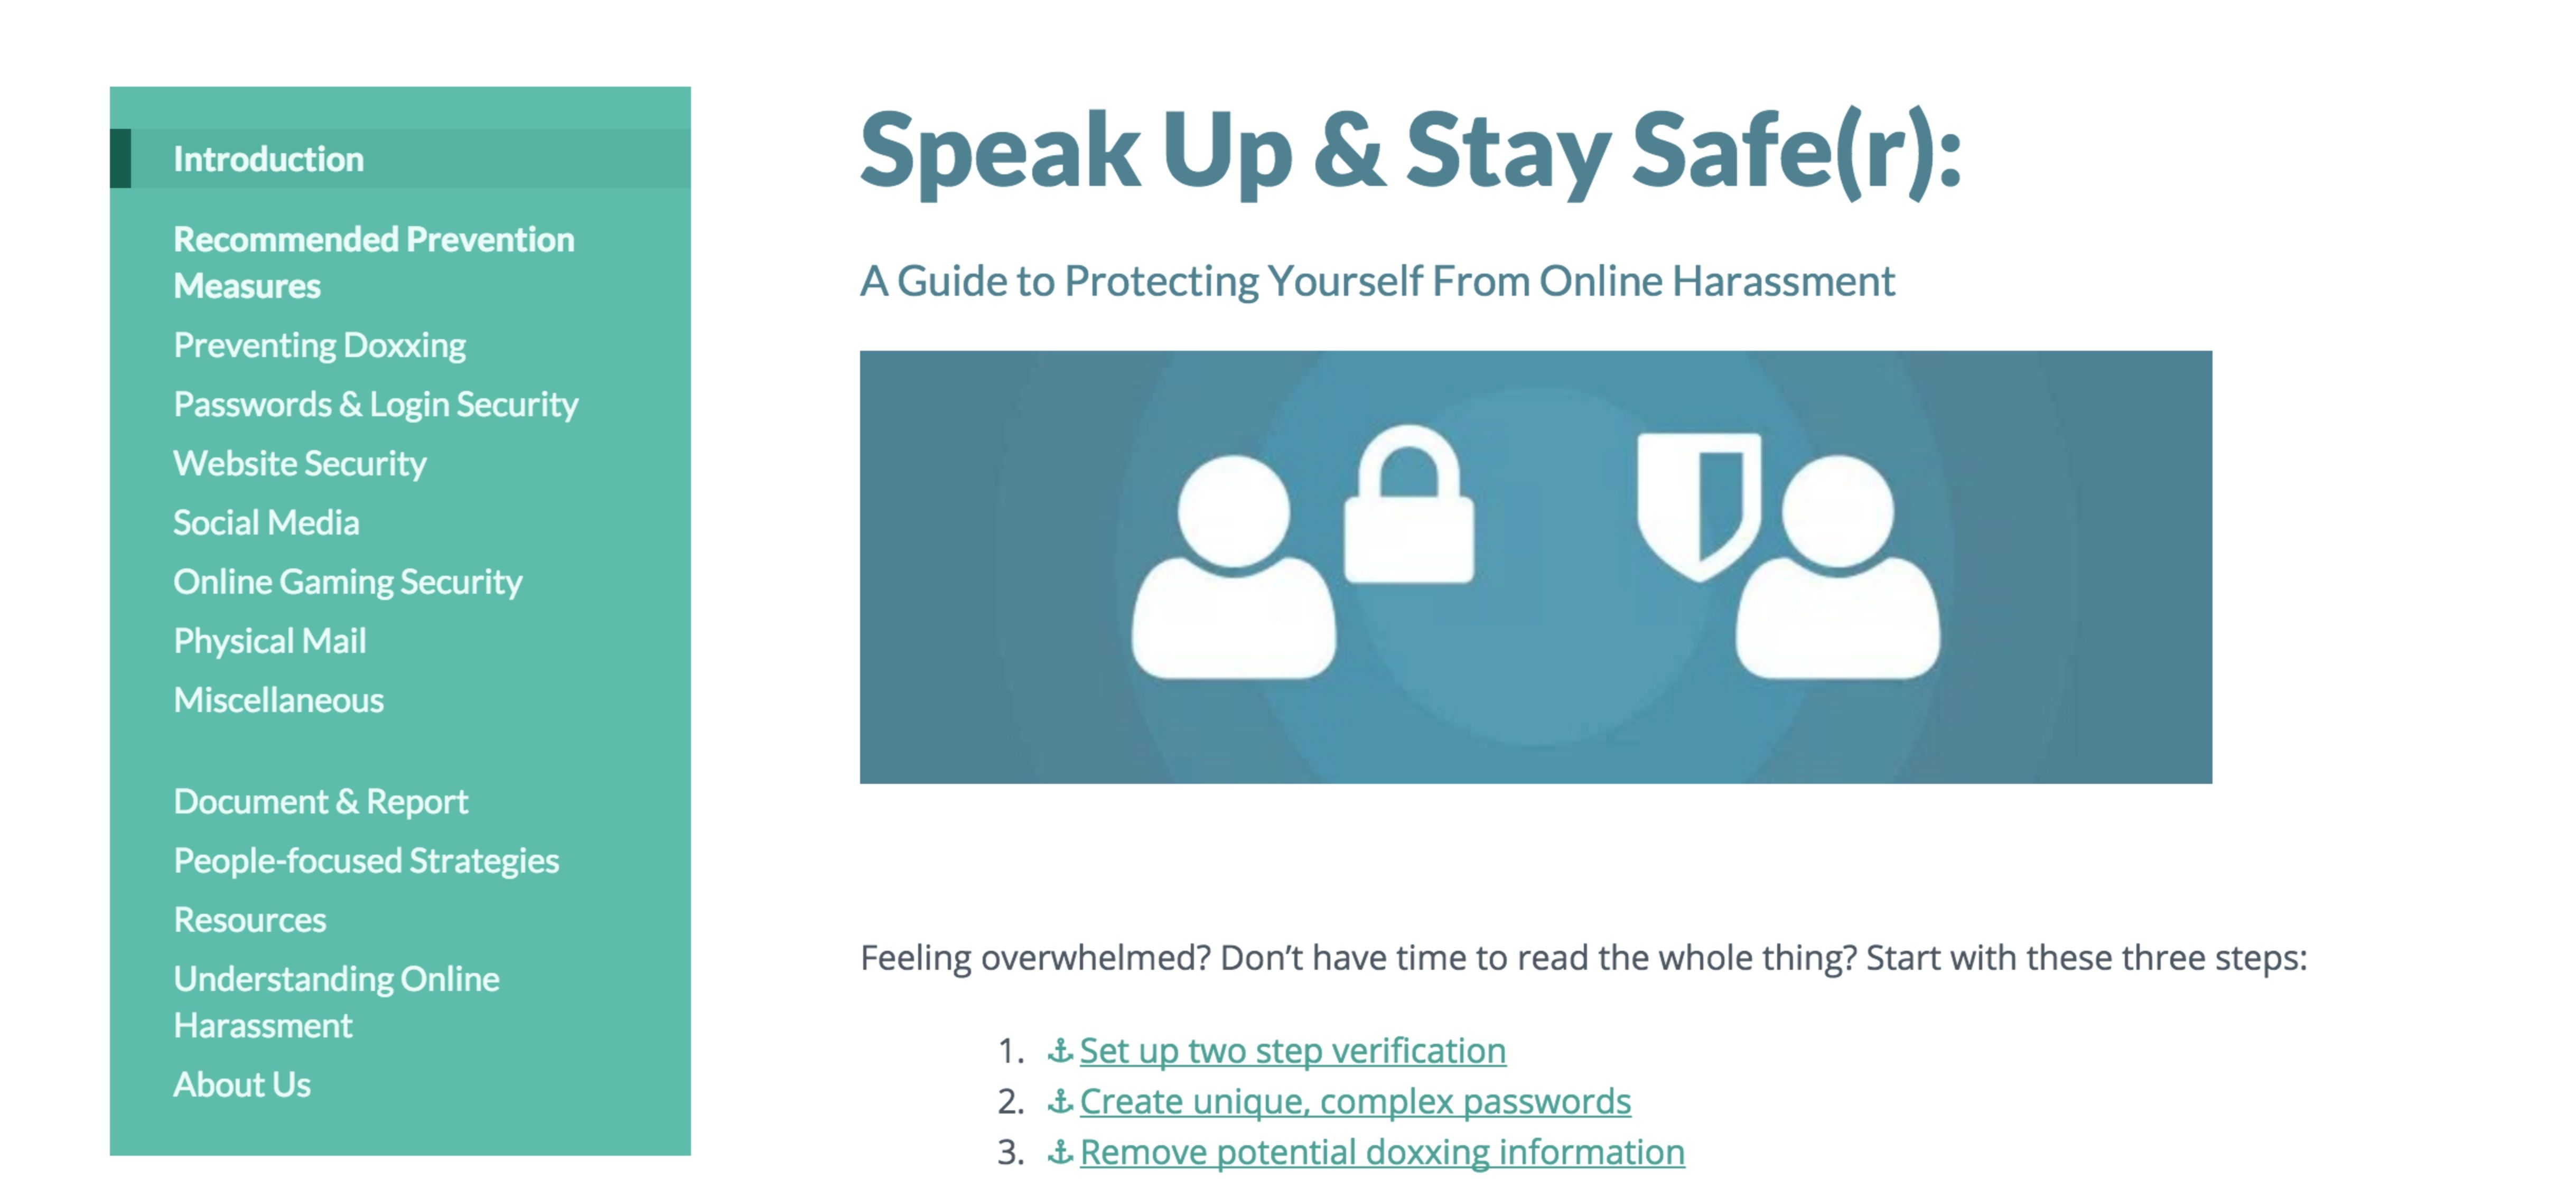 onlinesafetyguide-screenshot.0